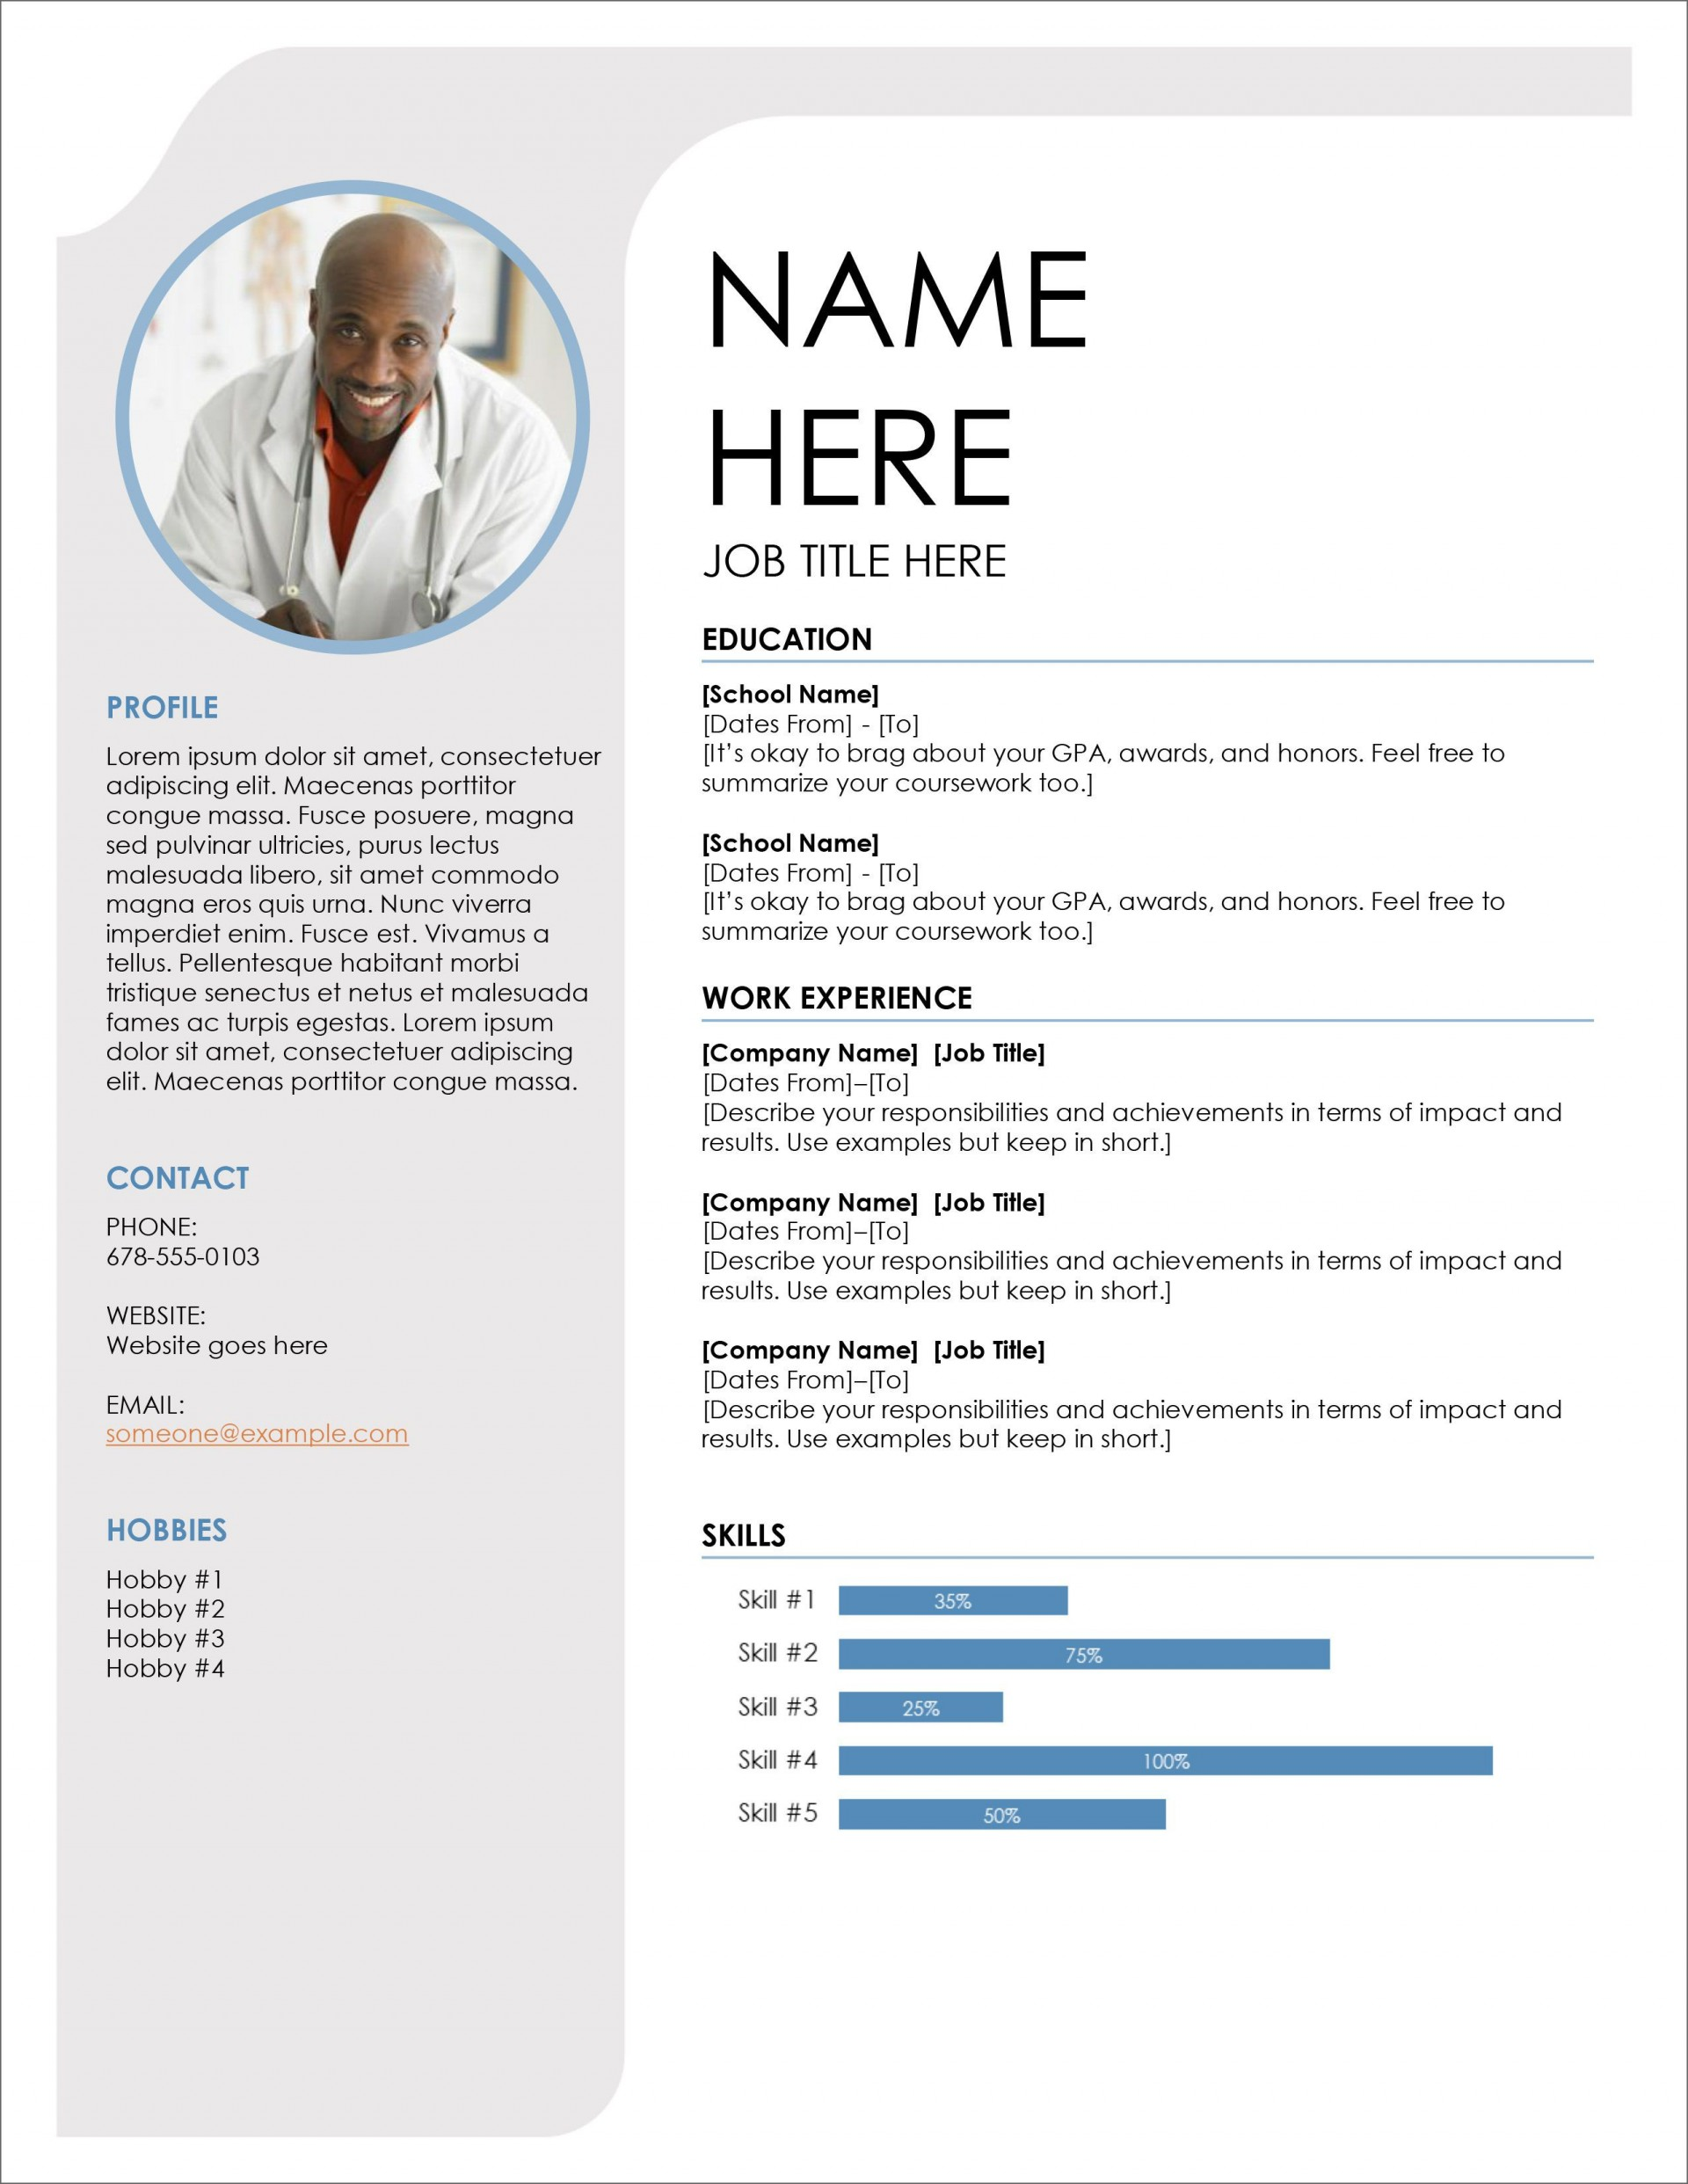 004 Marvelou Resume Sample Template Microsoft Word 2007 Inspiration 1920